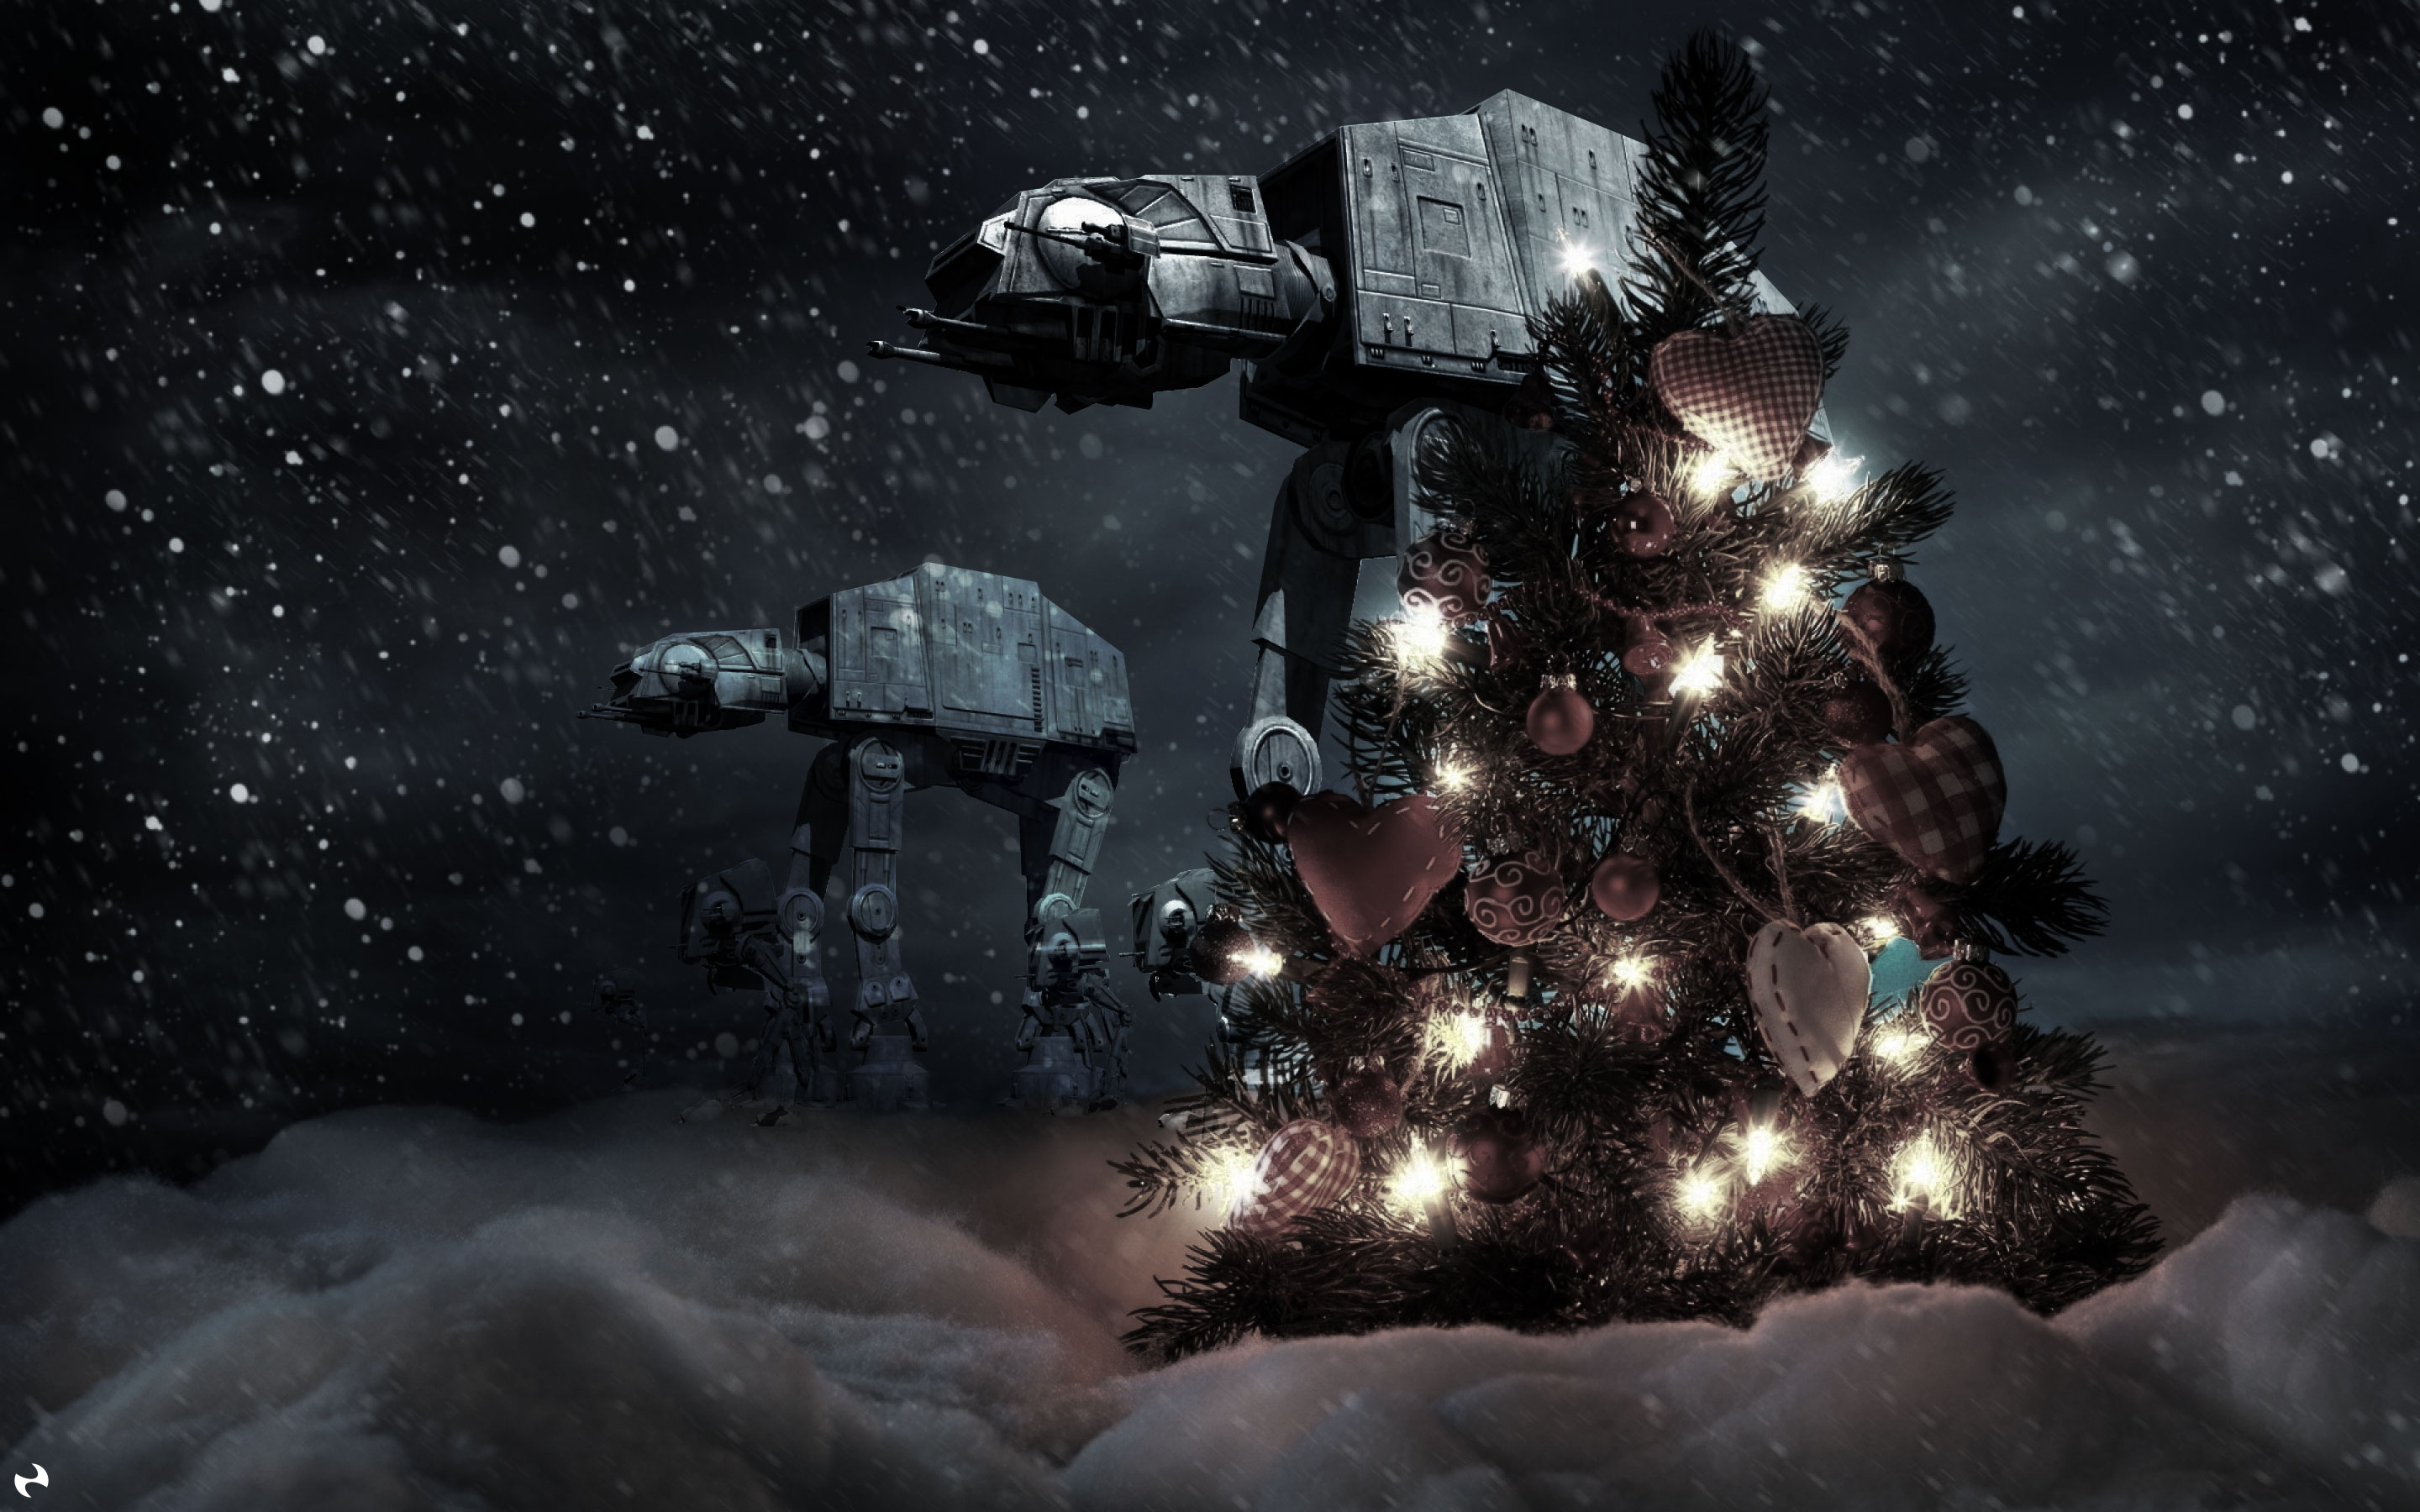 star wars christmas wallpaper - sf wallpaper